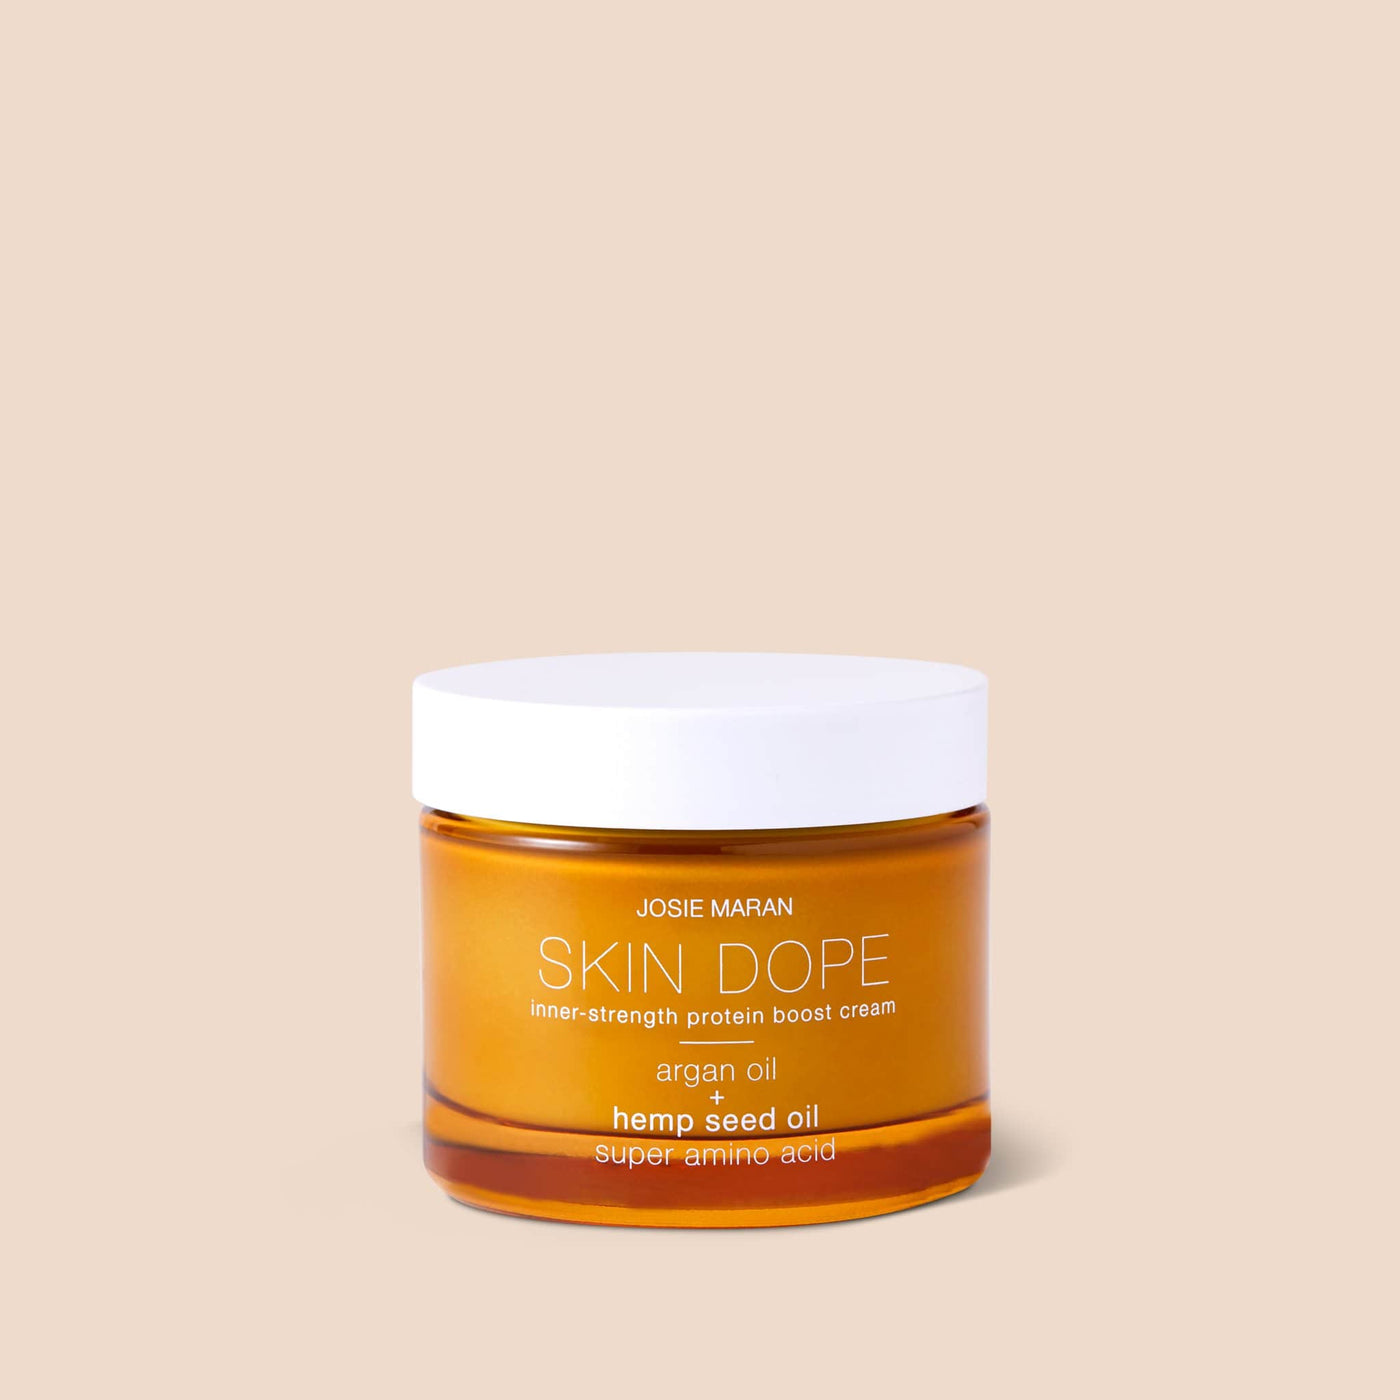 SKIN DOPE INNER STRENGTH PROTEIN BOOST CREAM